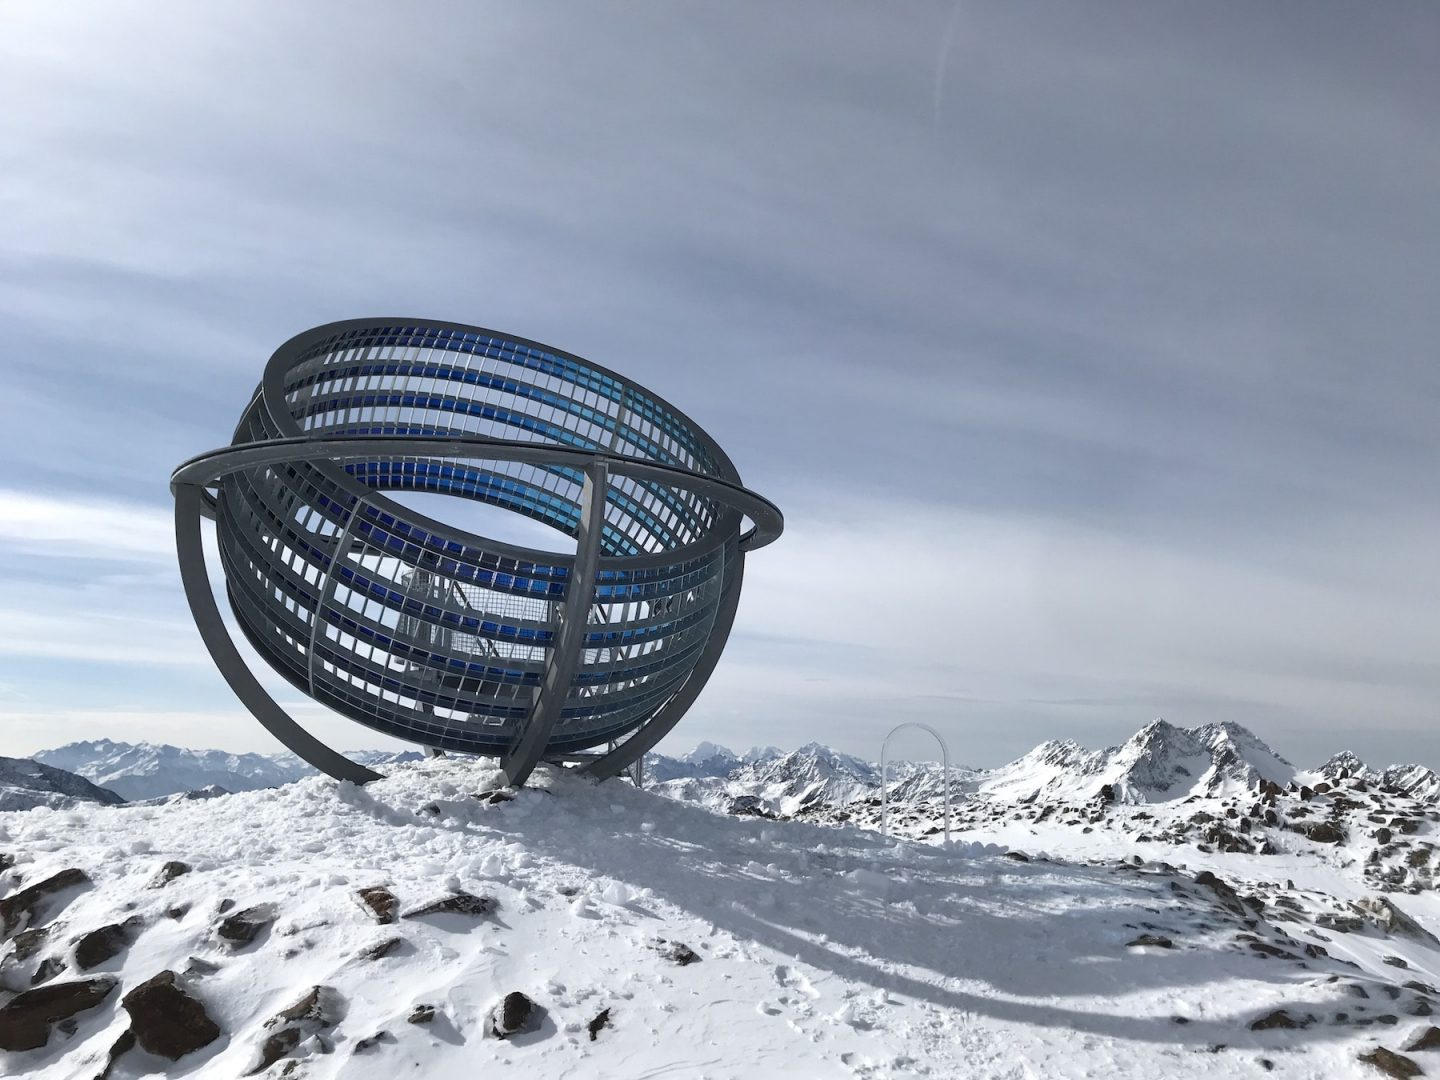 IGNANT-Art-Olafur-Eliasson-Our-Glacial-Perspectives-05-min